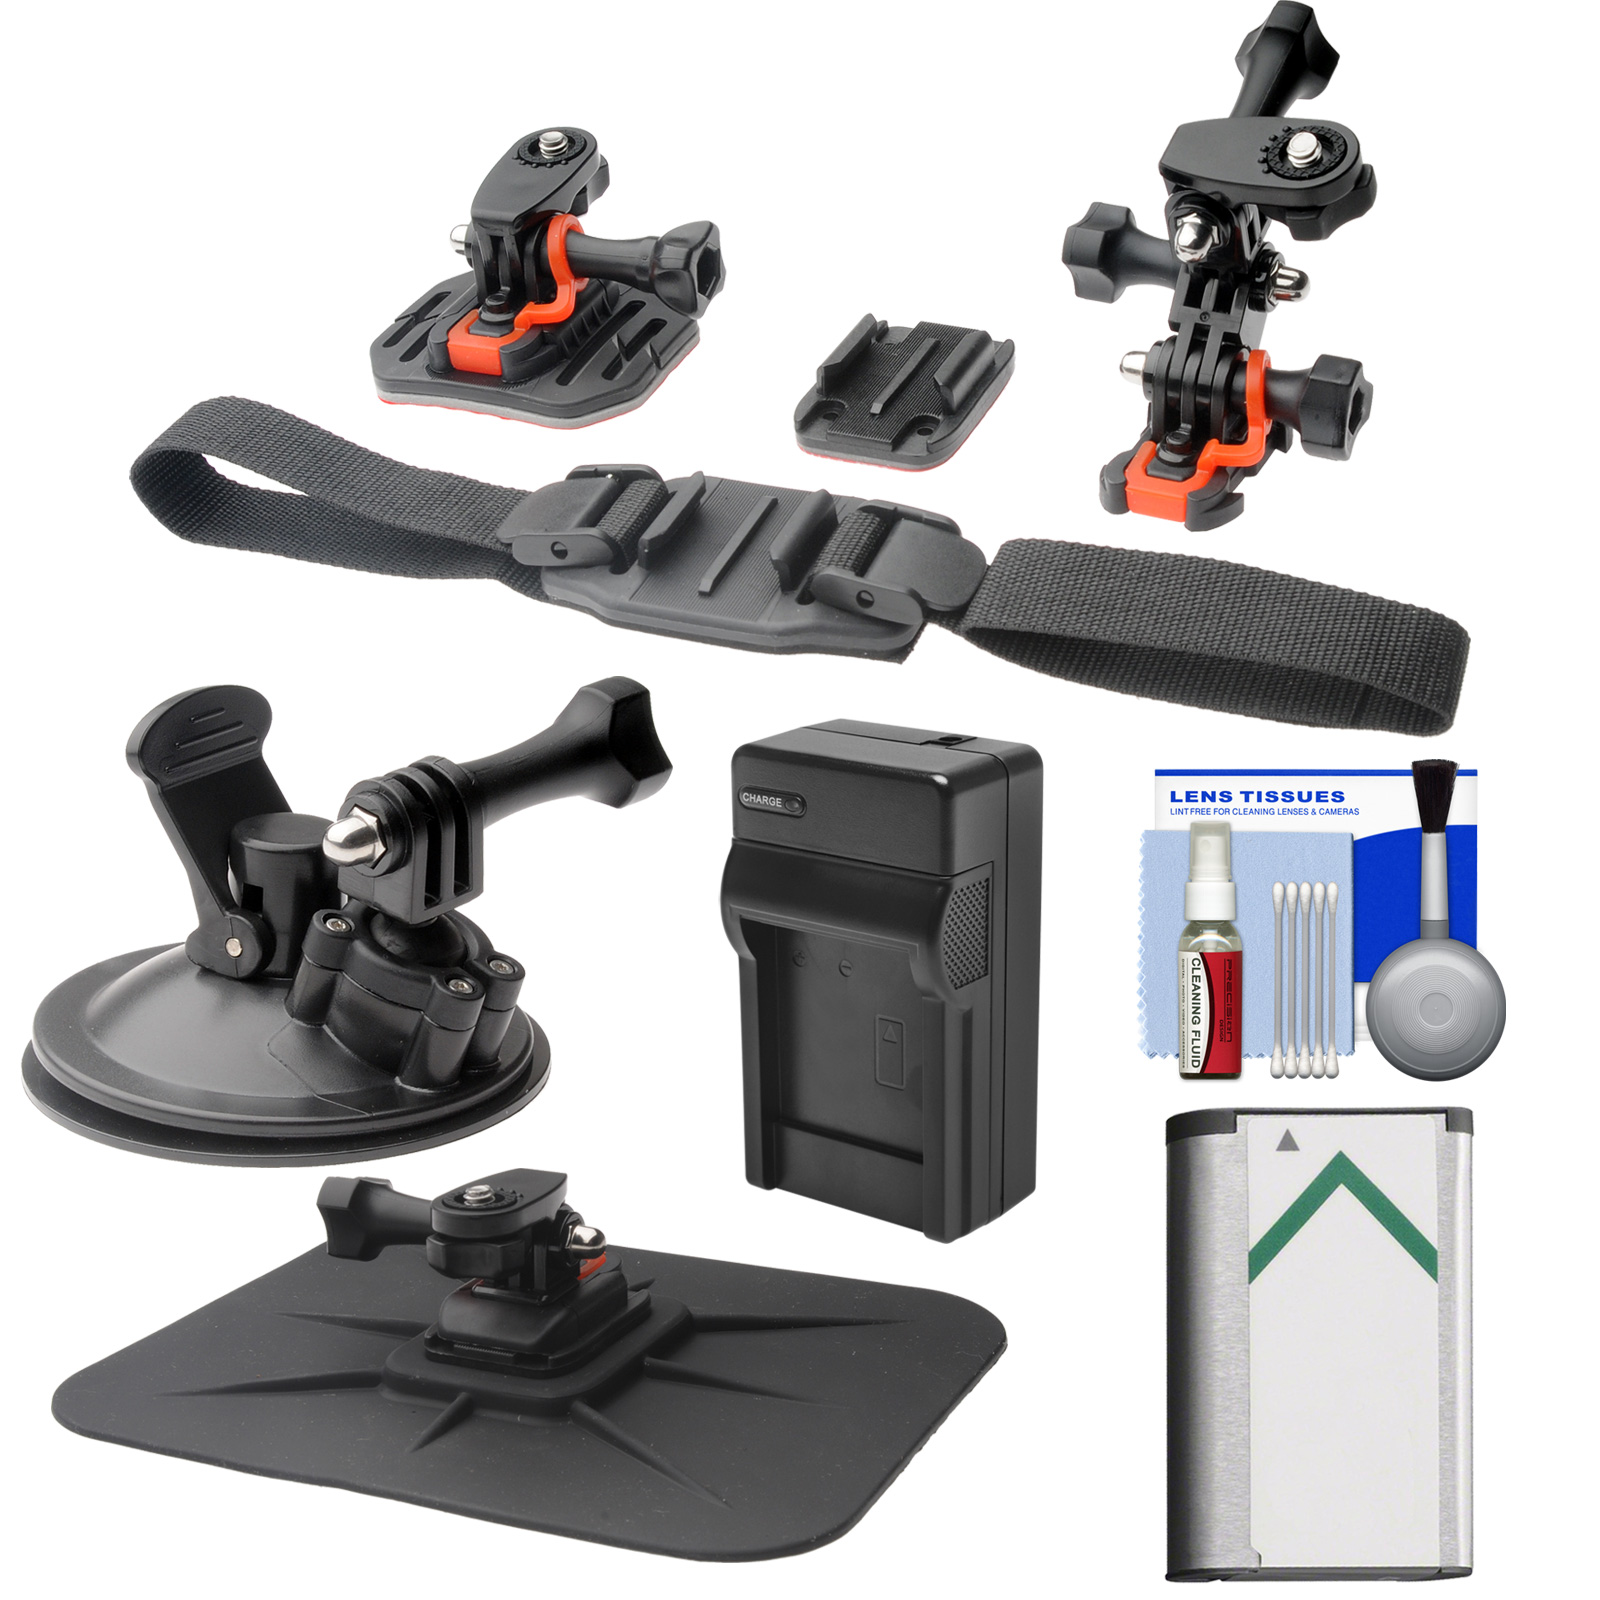 Essentials Bundle for Sony Action Cam HDR-AS20, AS50, AS100V, AS200V & FDR-1000X Camcorders with Helmet, Flat Surface & Car Mounts + Battery + Charger + Accessory Kit